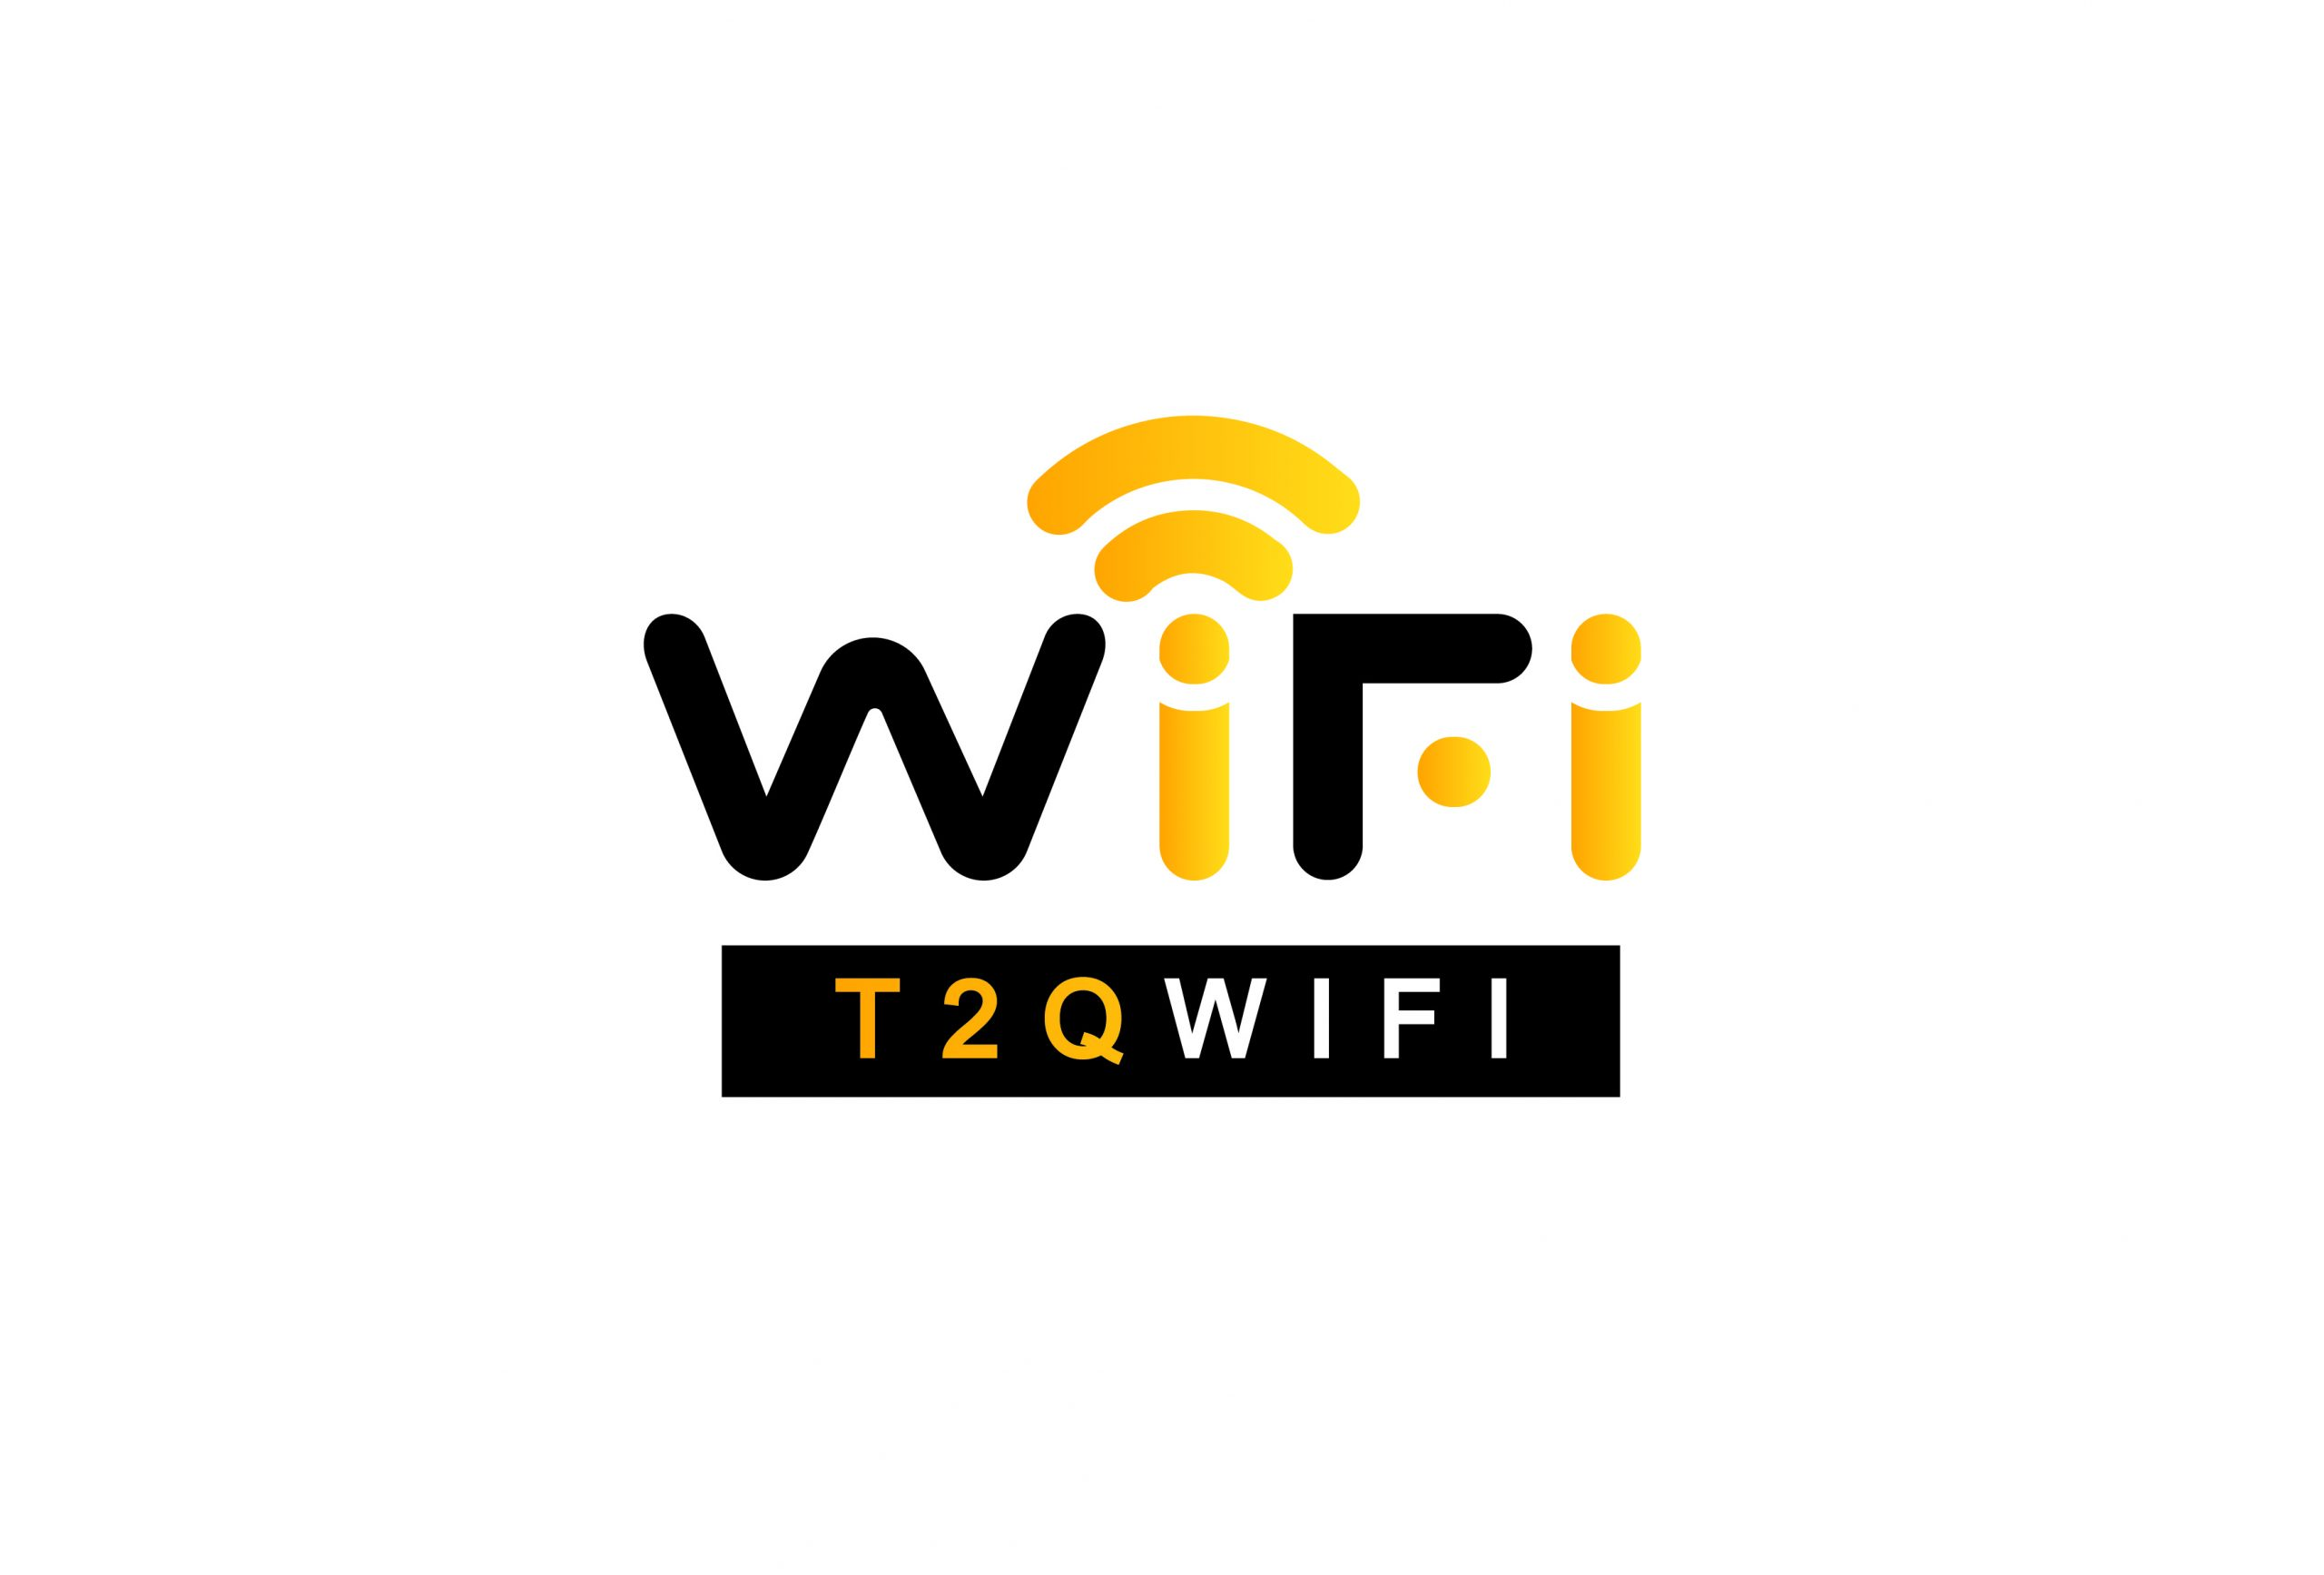 t2qwifi_ds-2cd2123g0-i1